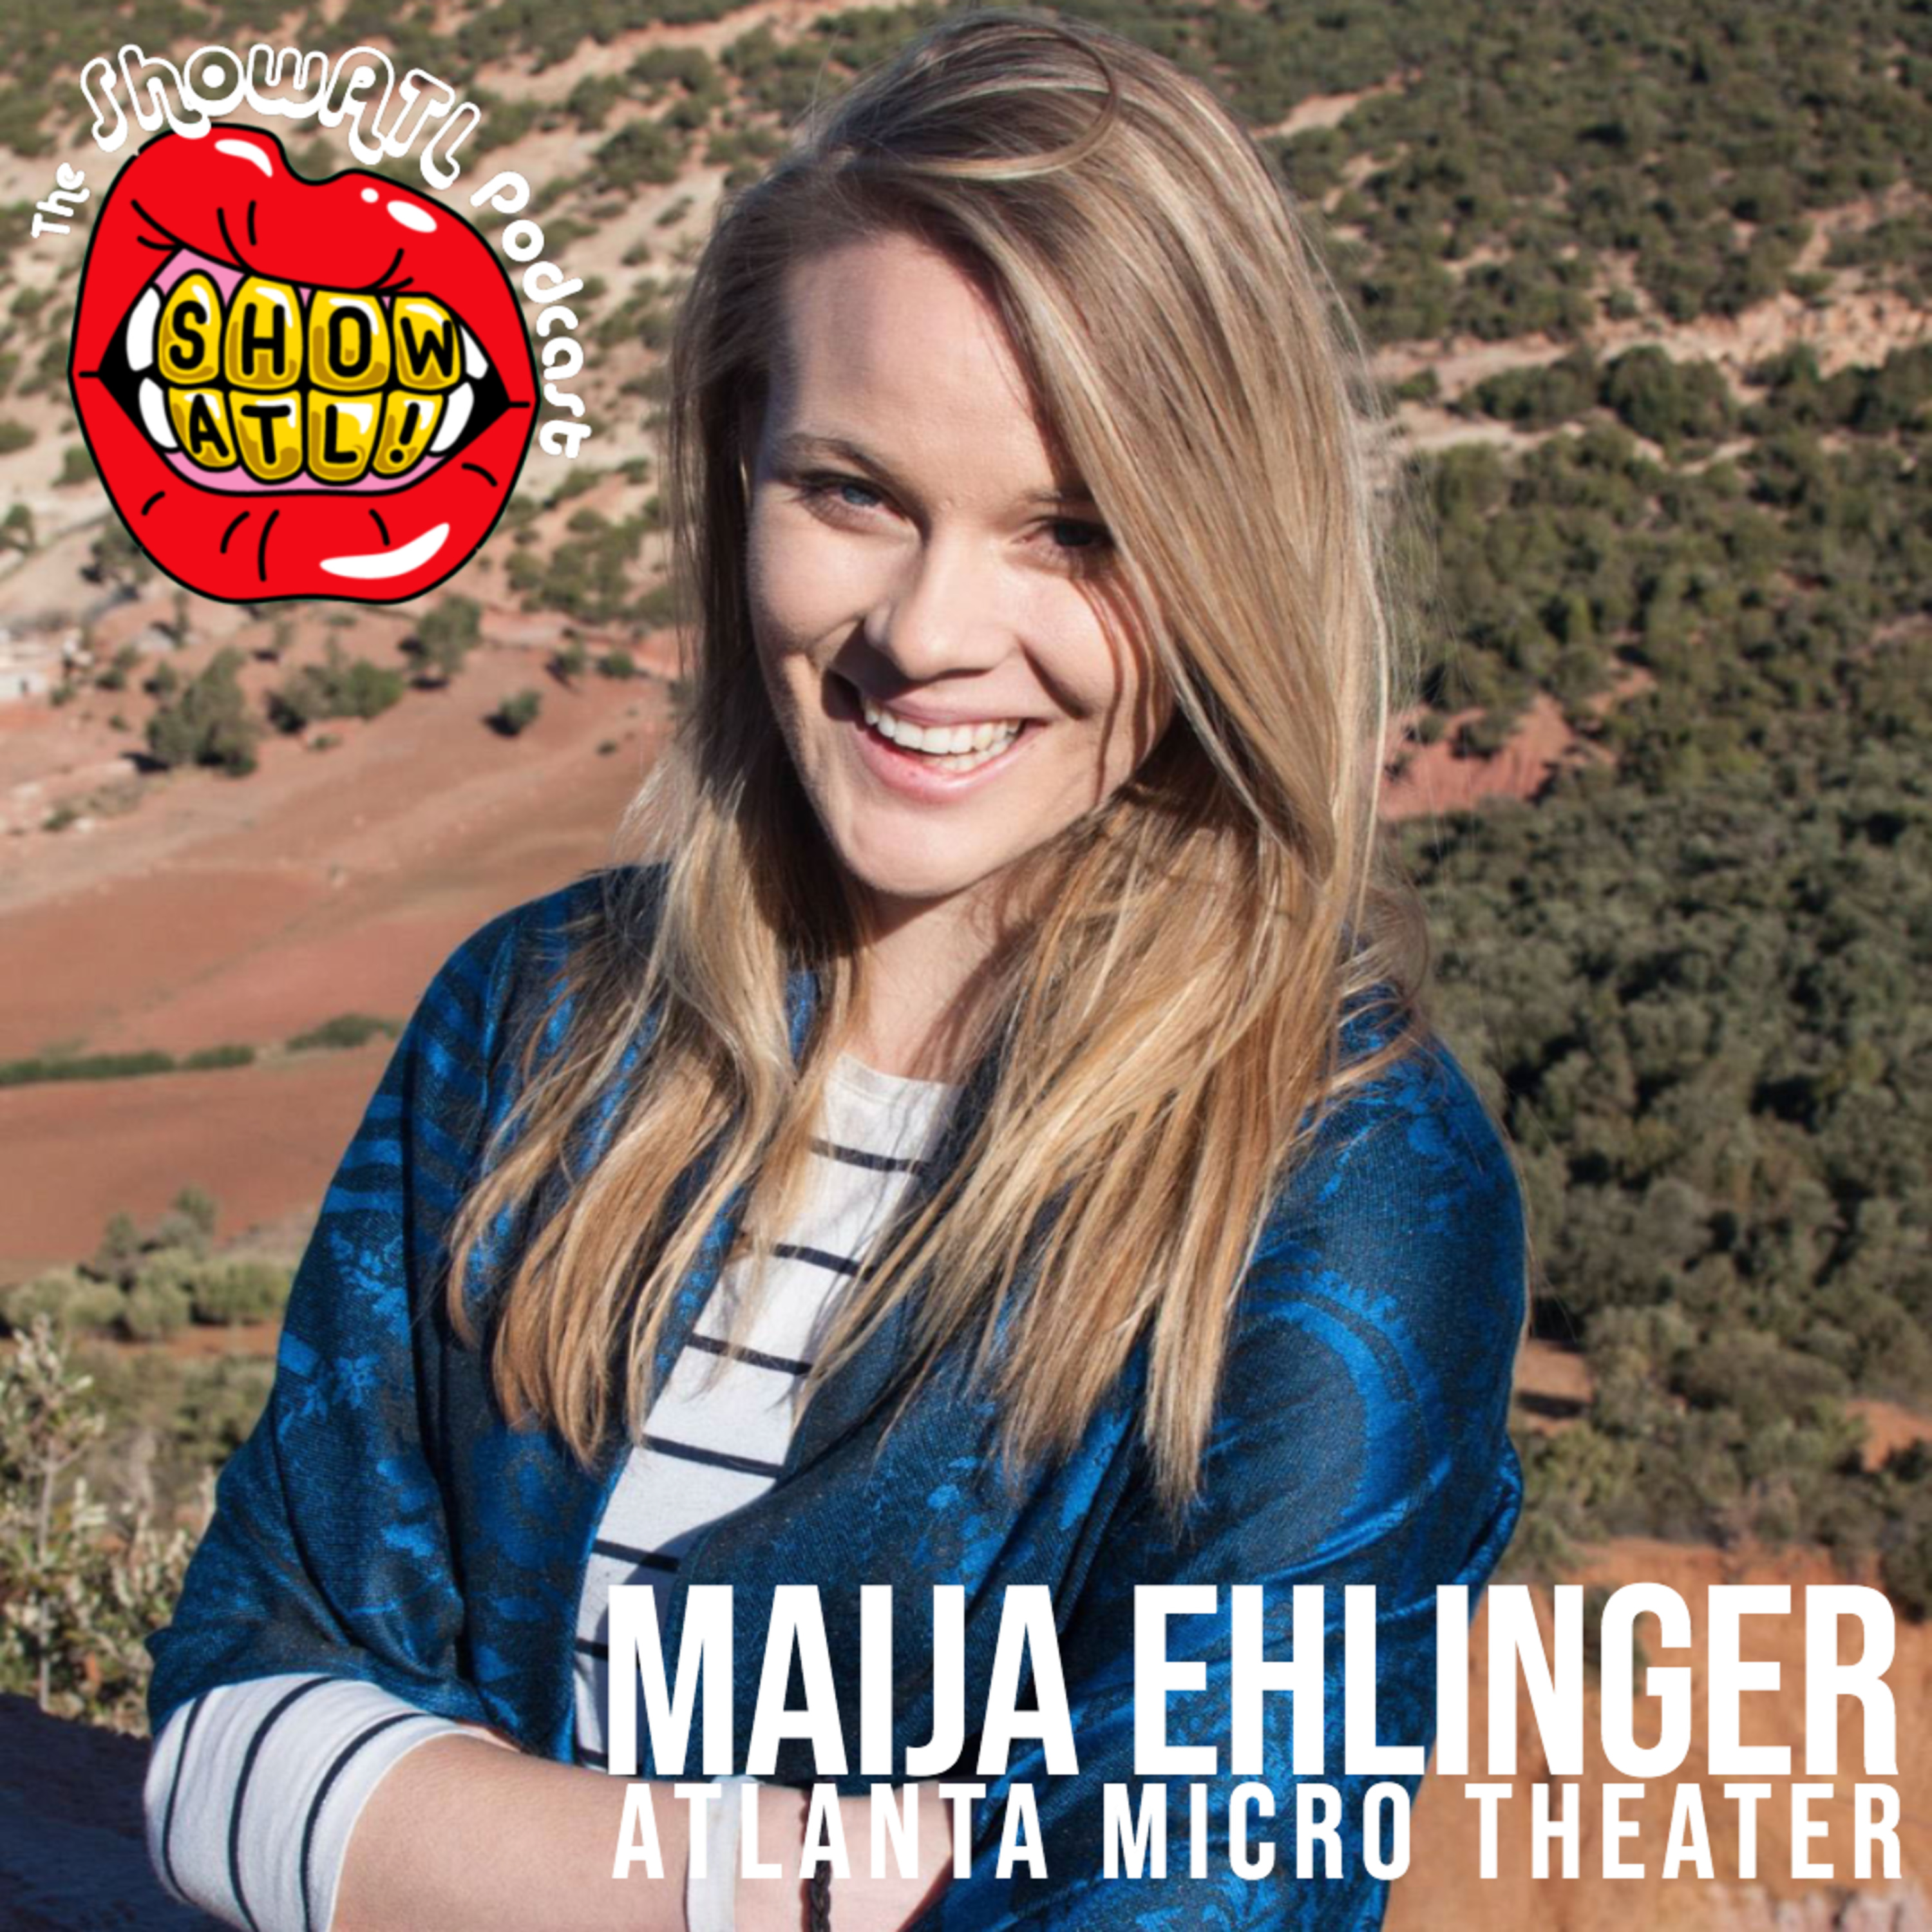 Maija Ehlinger of Atlanta Micro Theater - Episode 30